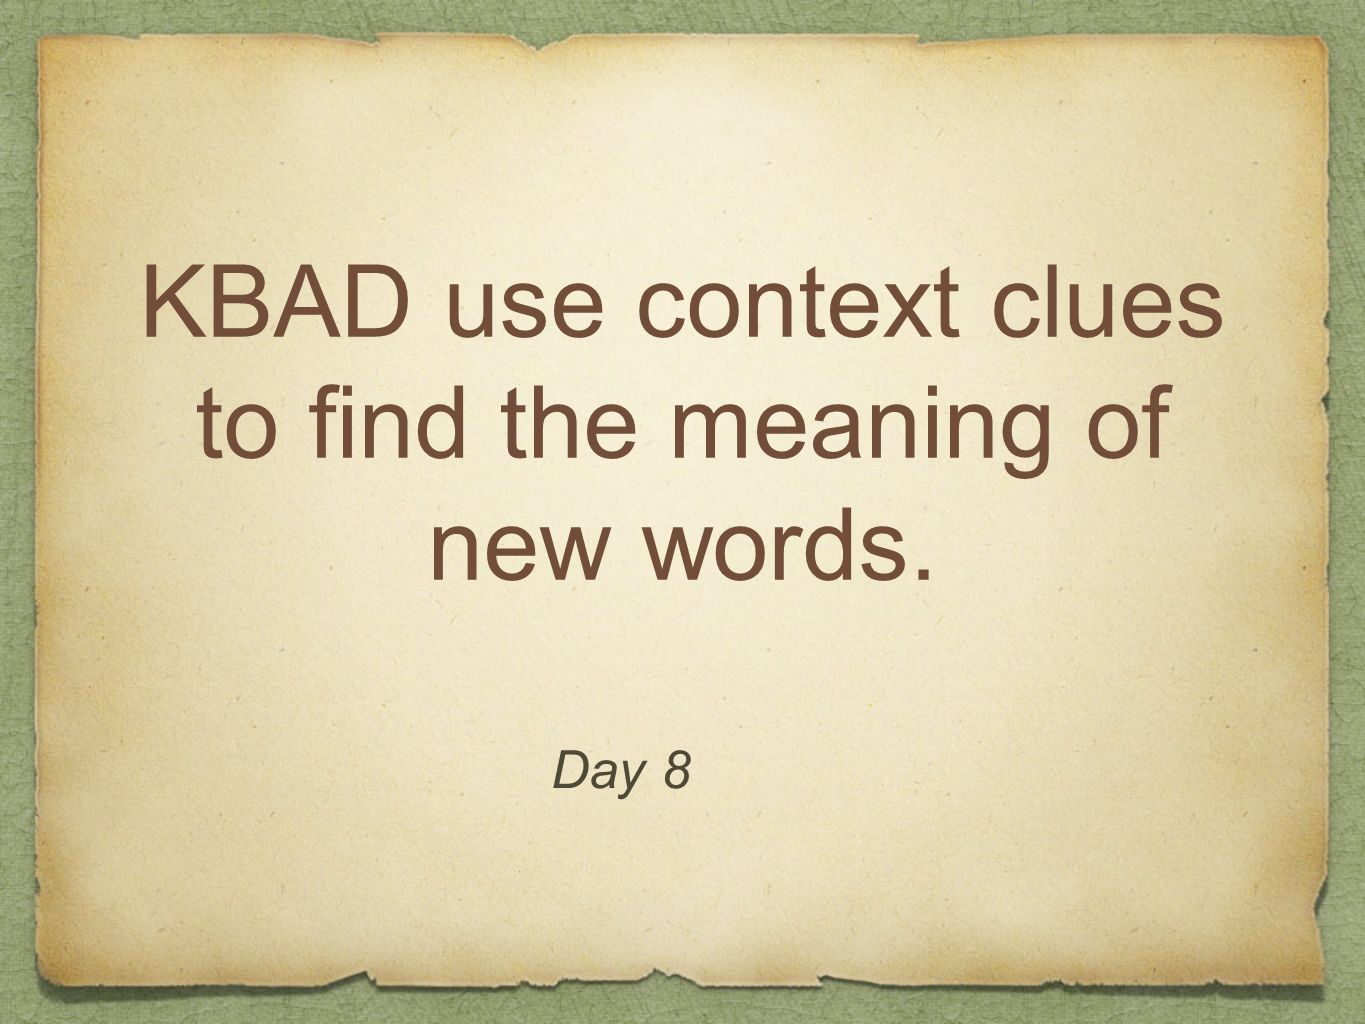 KBAD use context clues to find the meaning of new words.